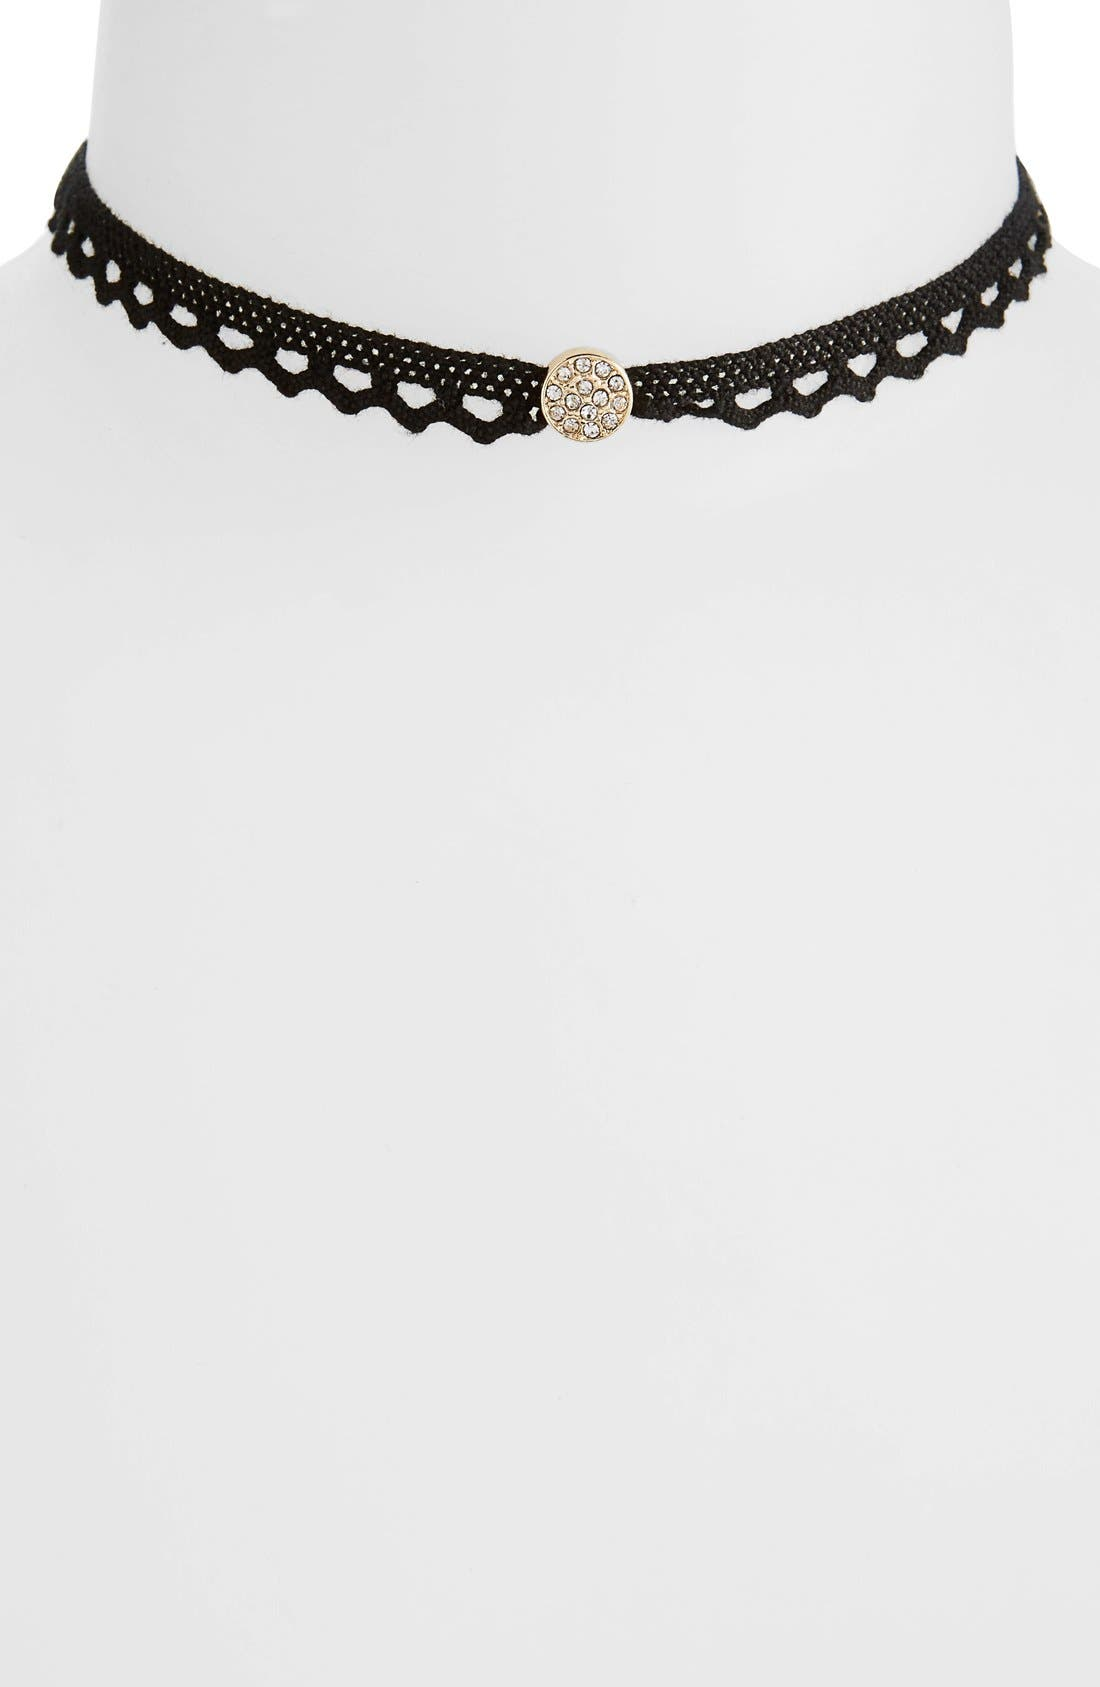 Alternate Image 1 Selected - Shinhwa Stone Charm Stretch Choker